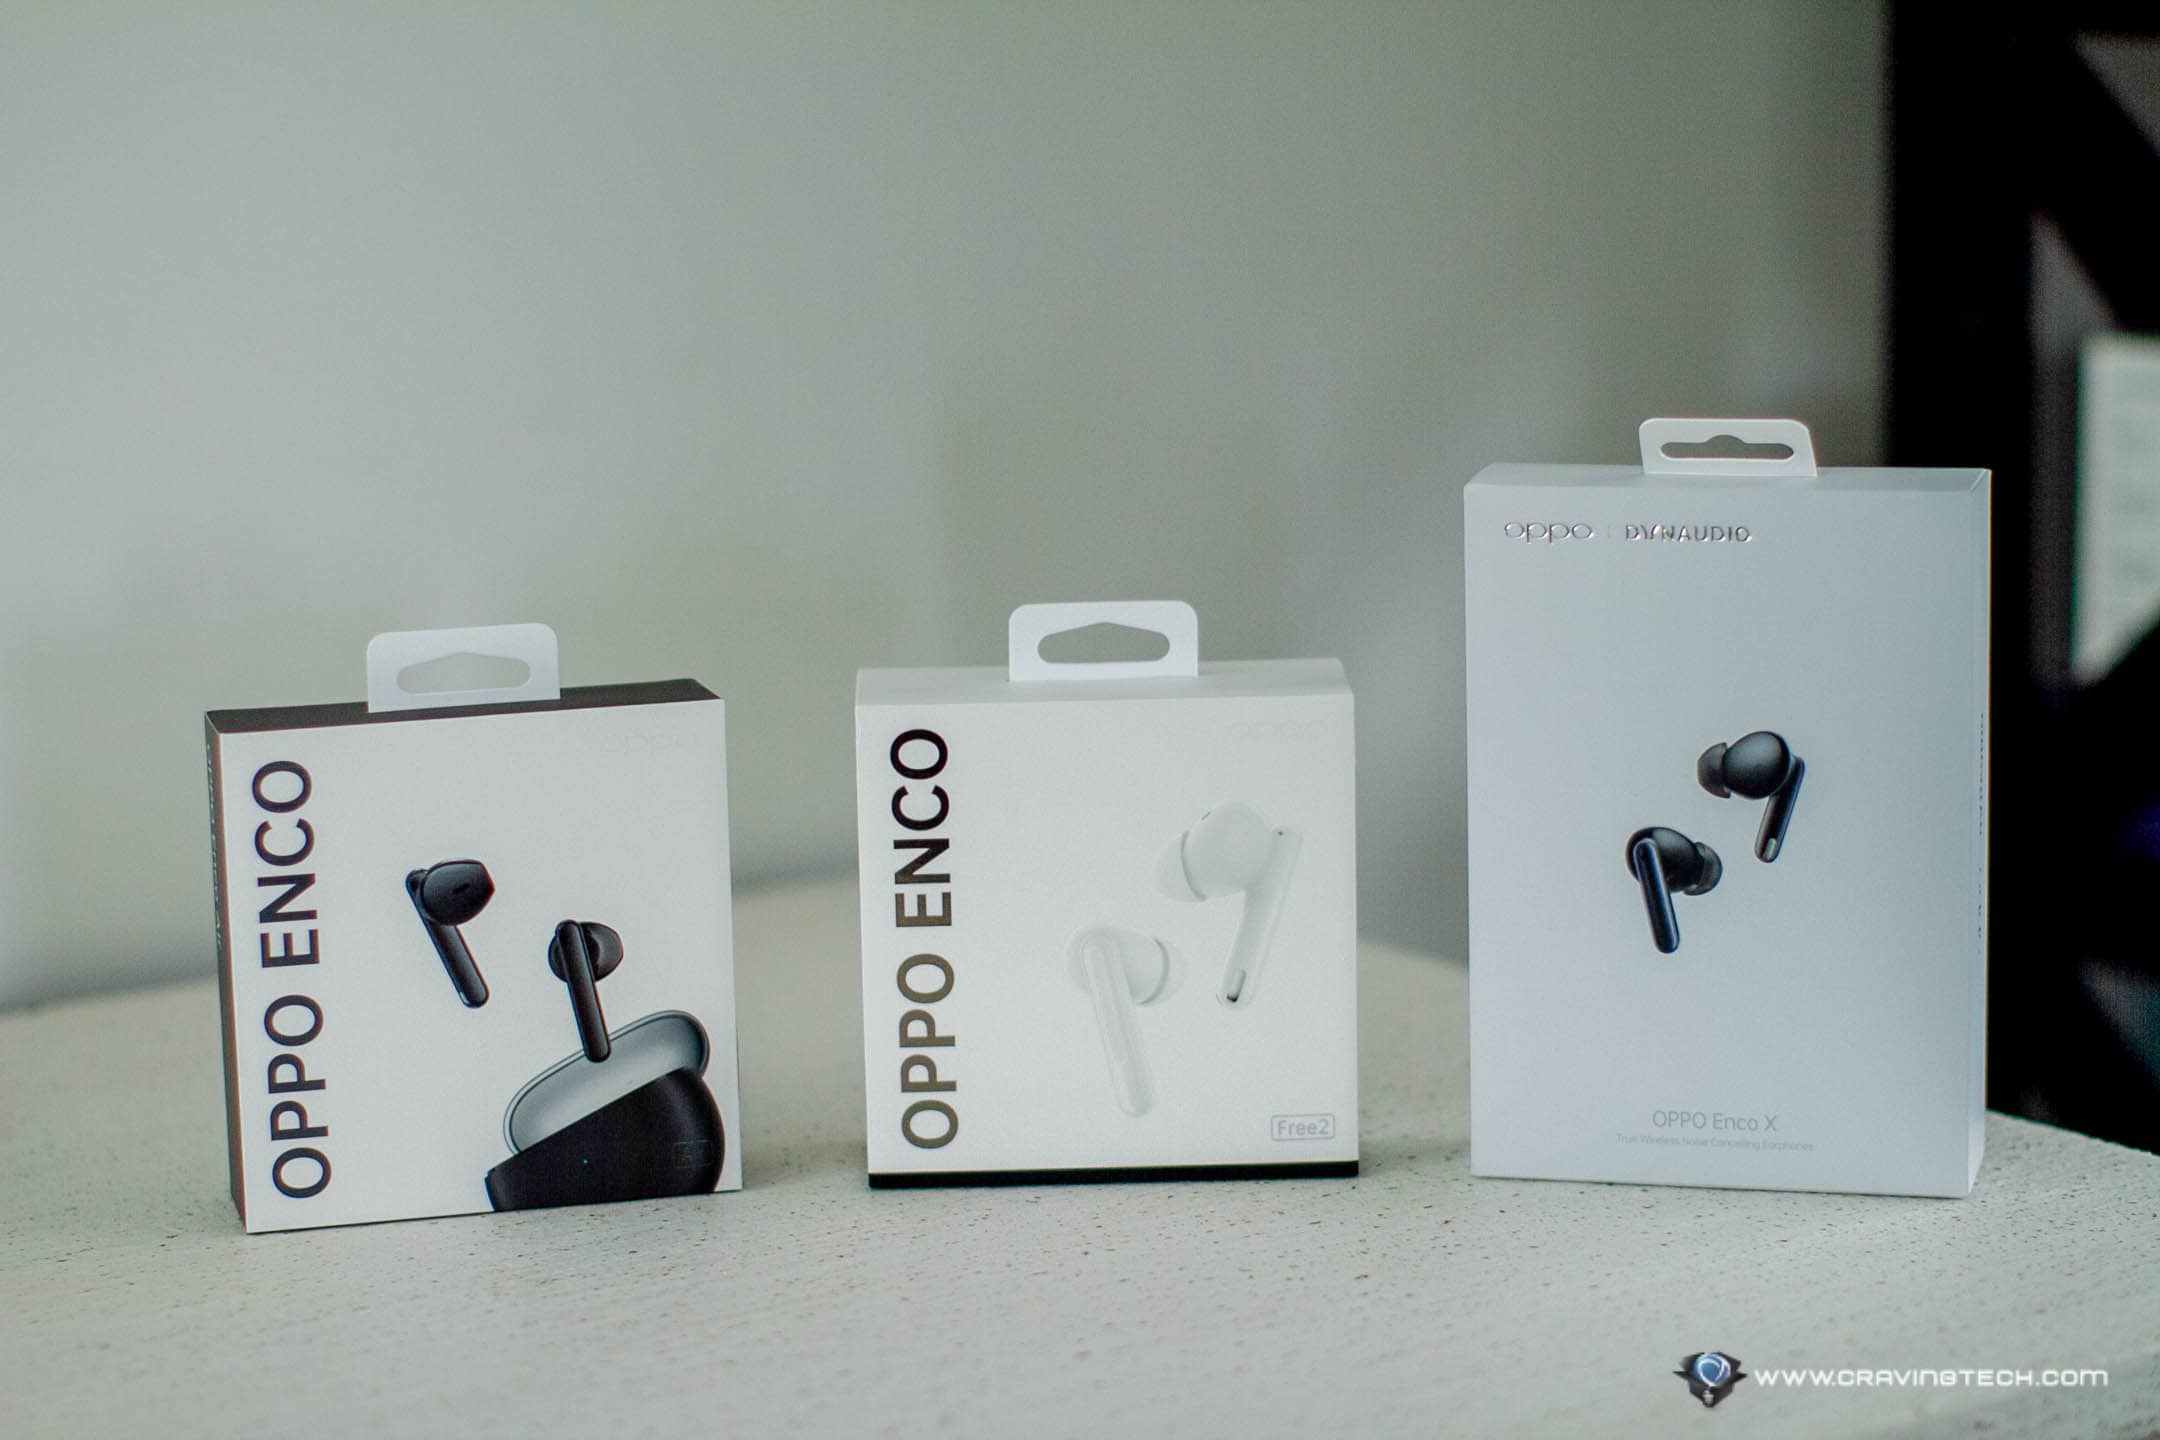 OPPO's latest and greatest TWS earphones impressions – OPPO Enco Air, Enco Free2, and Enco X